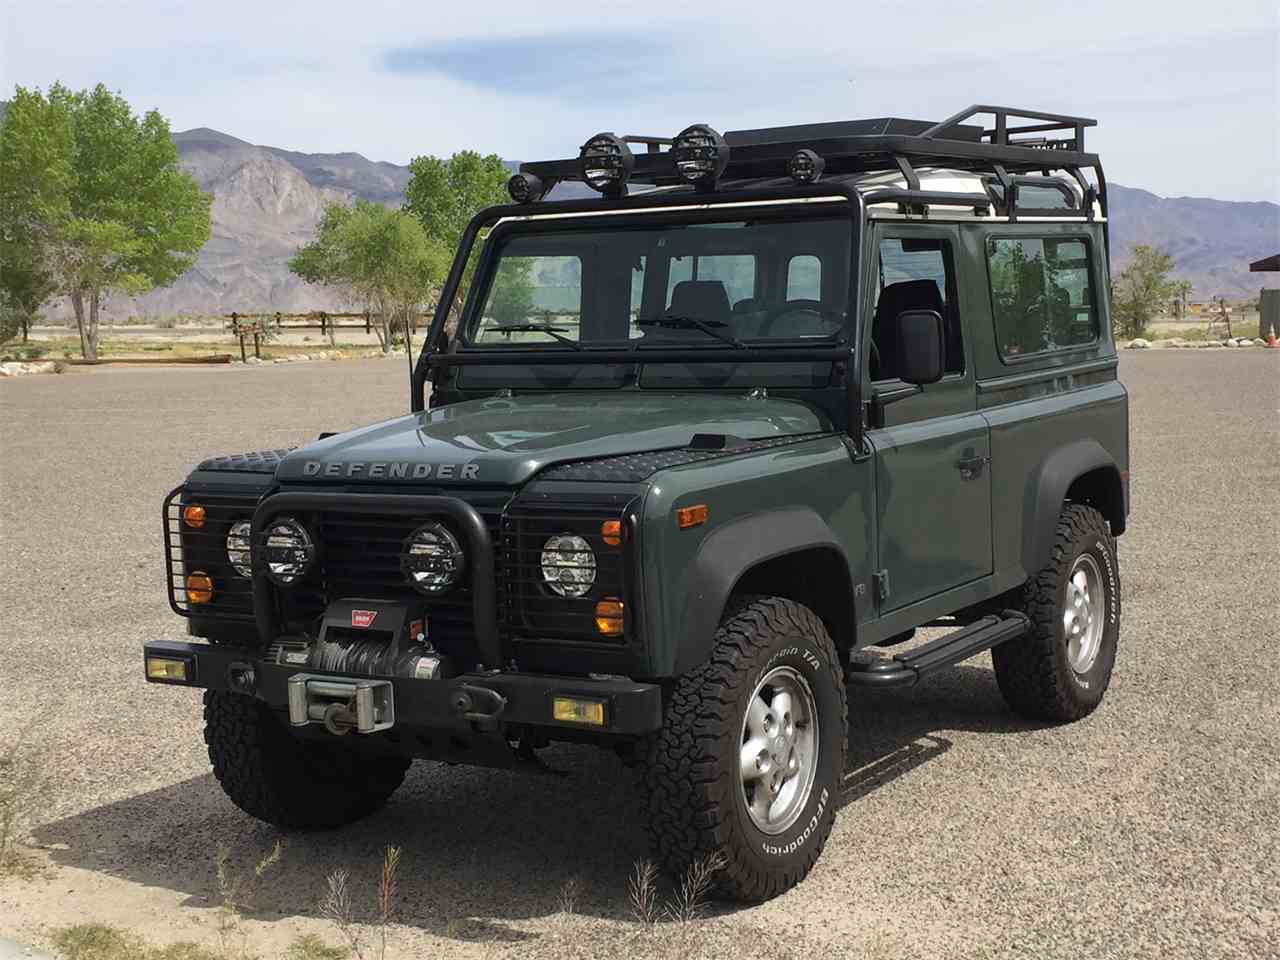 1995 land rover discovery fuse diagram library of wiring diagrams \u2022 lifted land rover defender 90 97 range rover fuse box location trusted wiring diagram rh dafpods co 1995 land rover defender fuse box location 1991 land rover discovery